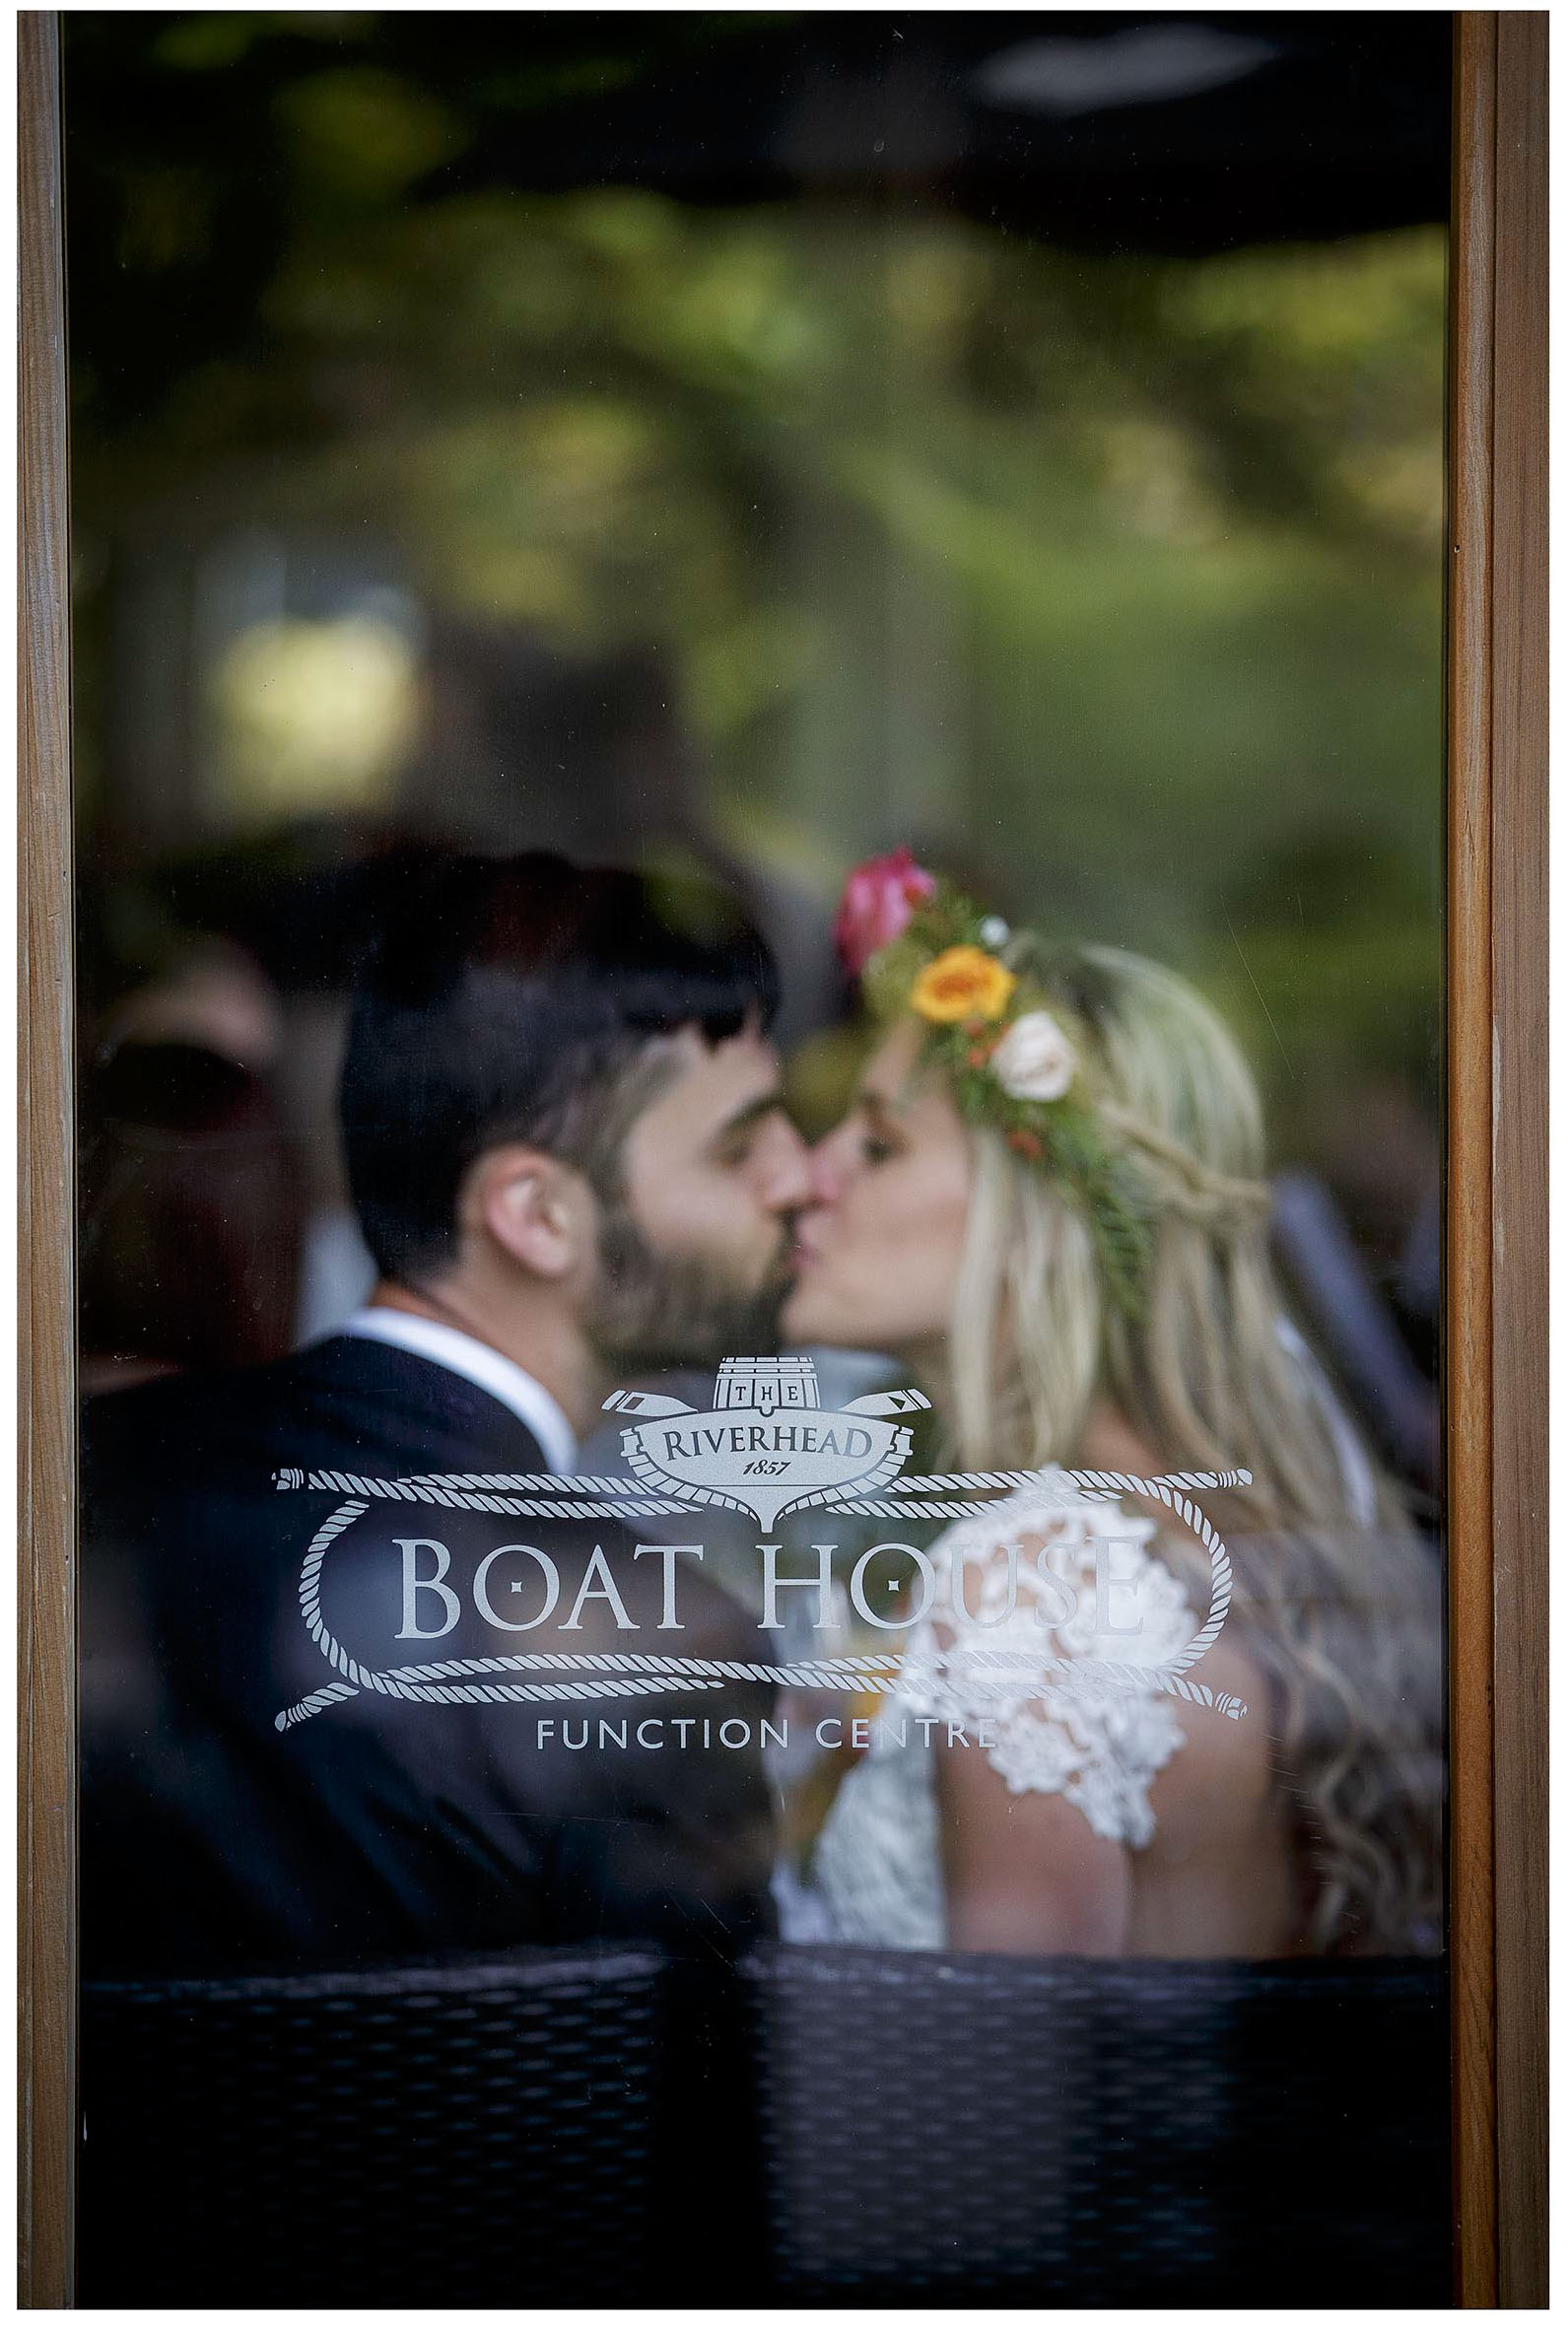 The Boat House at River Head Tavern Aucklansd Wedding photo by Chris Loufte